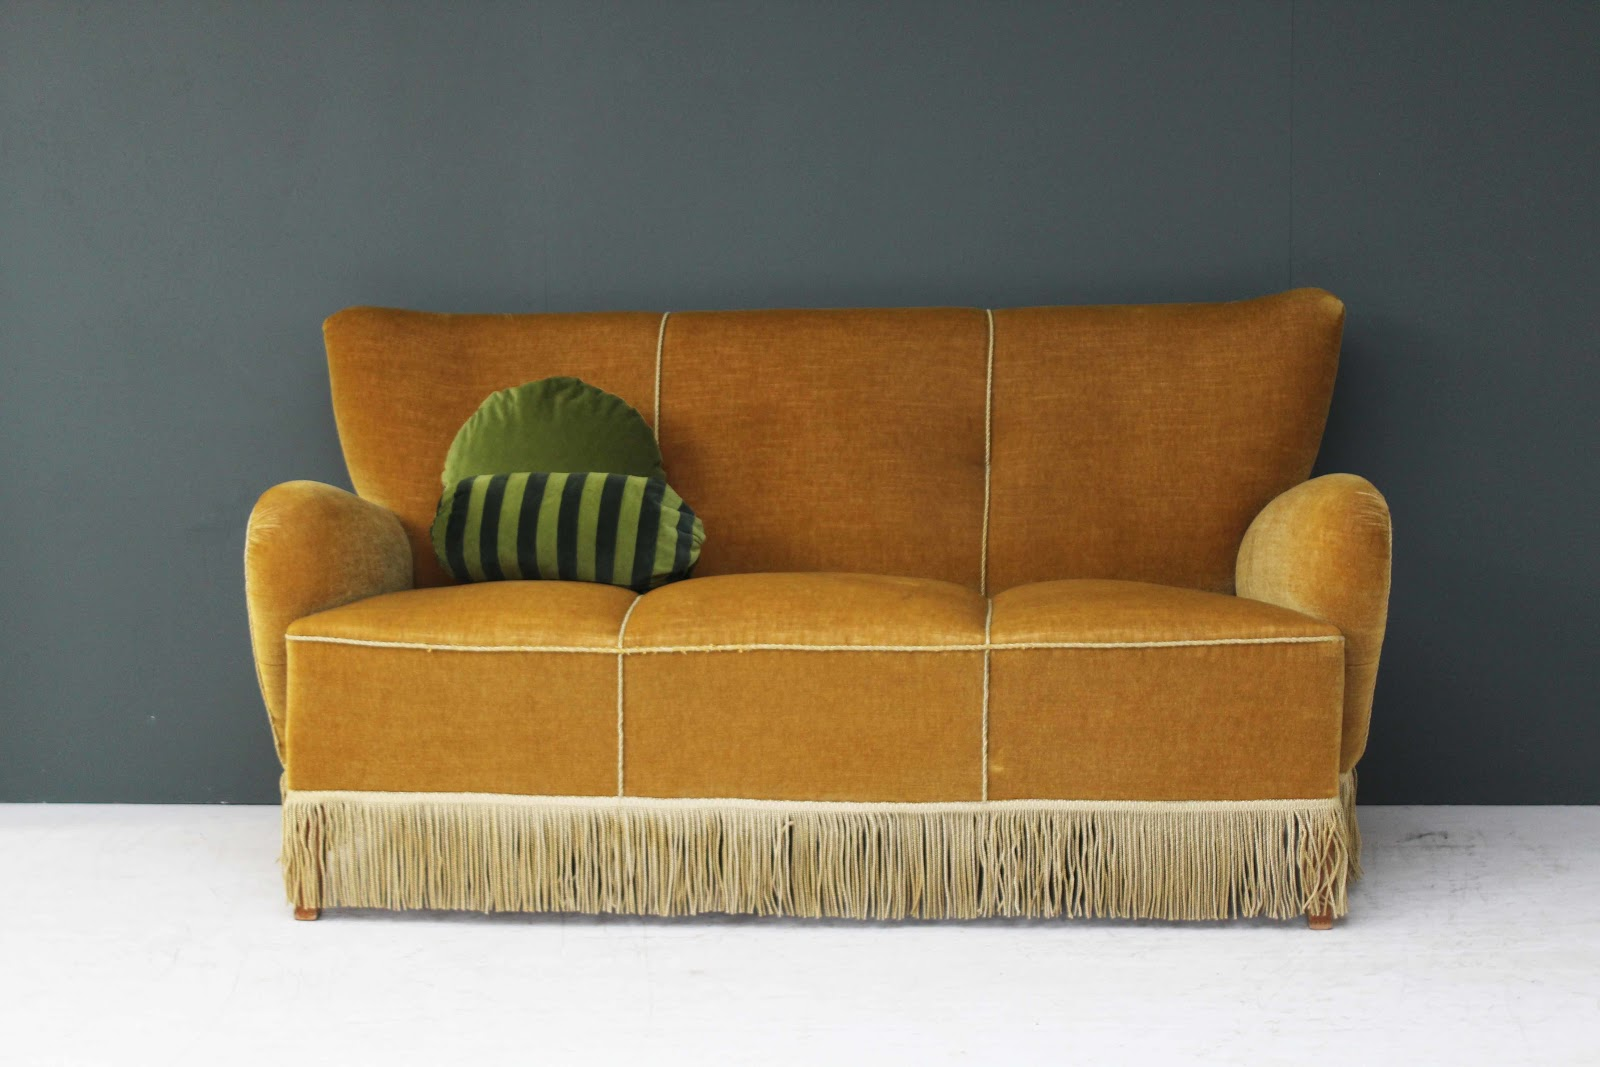 Vintage 1930s two seater sofa with fringing